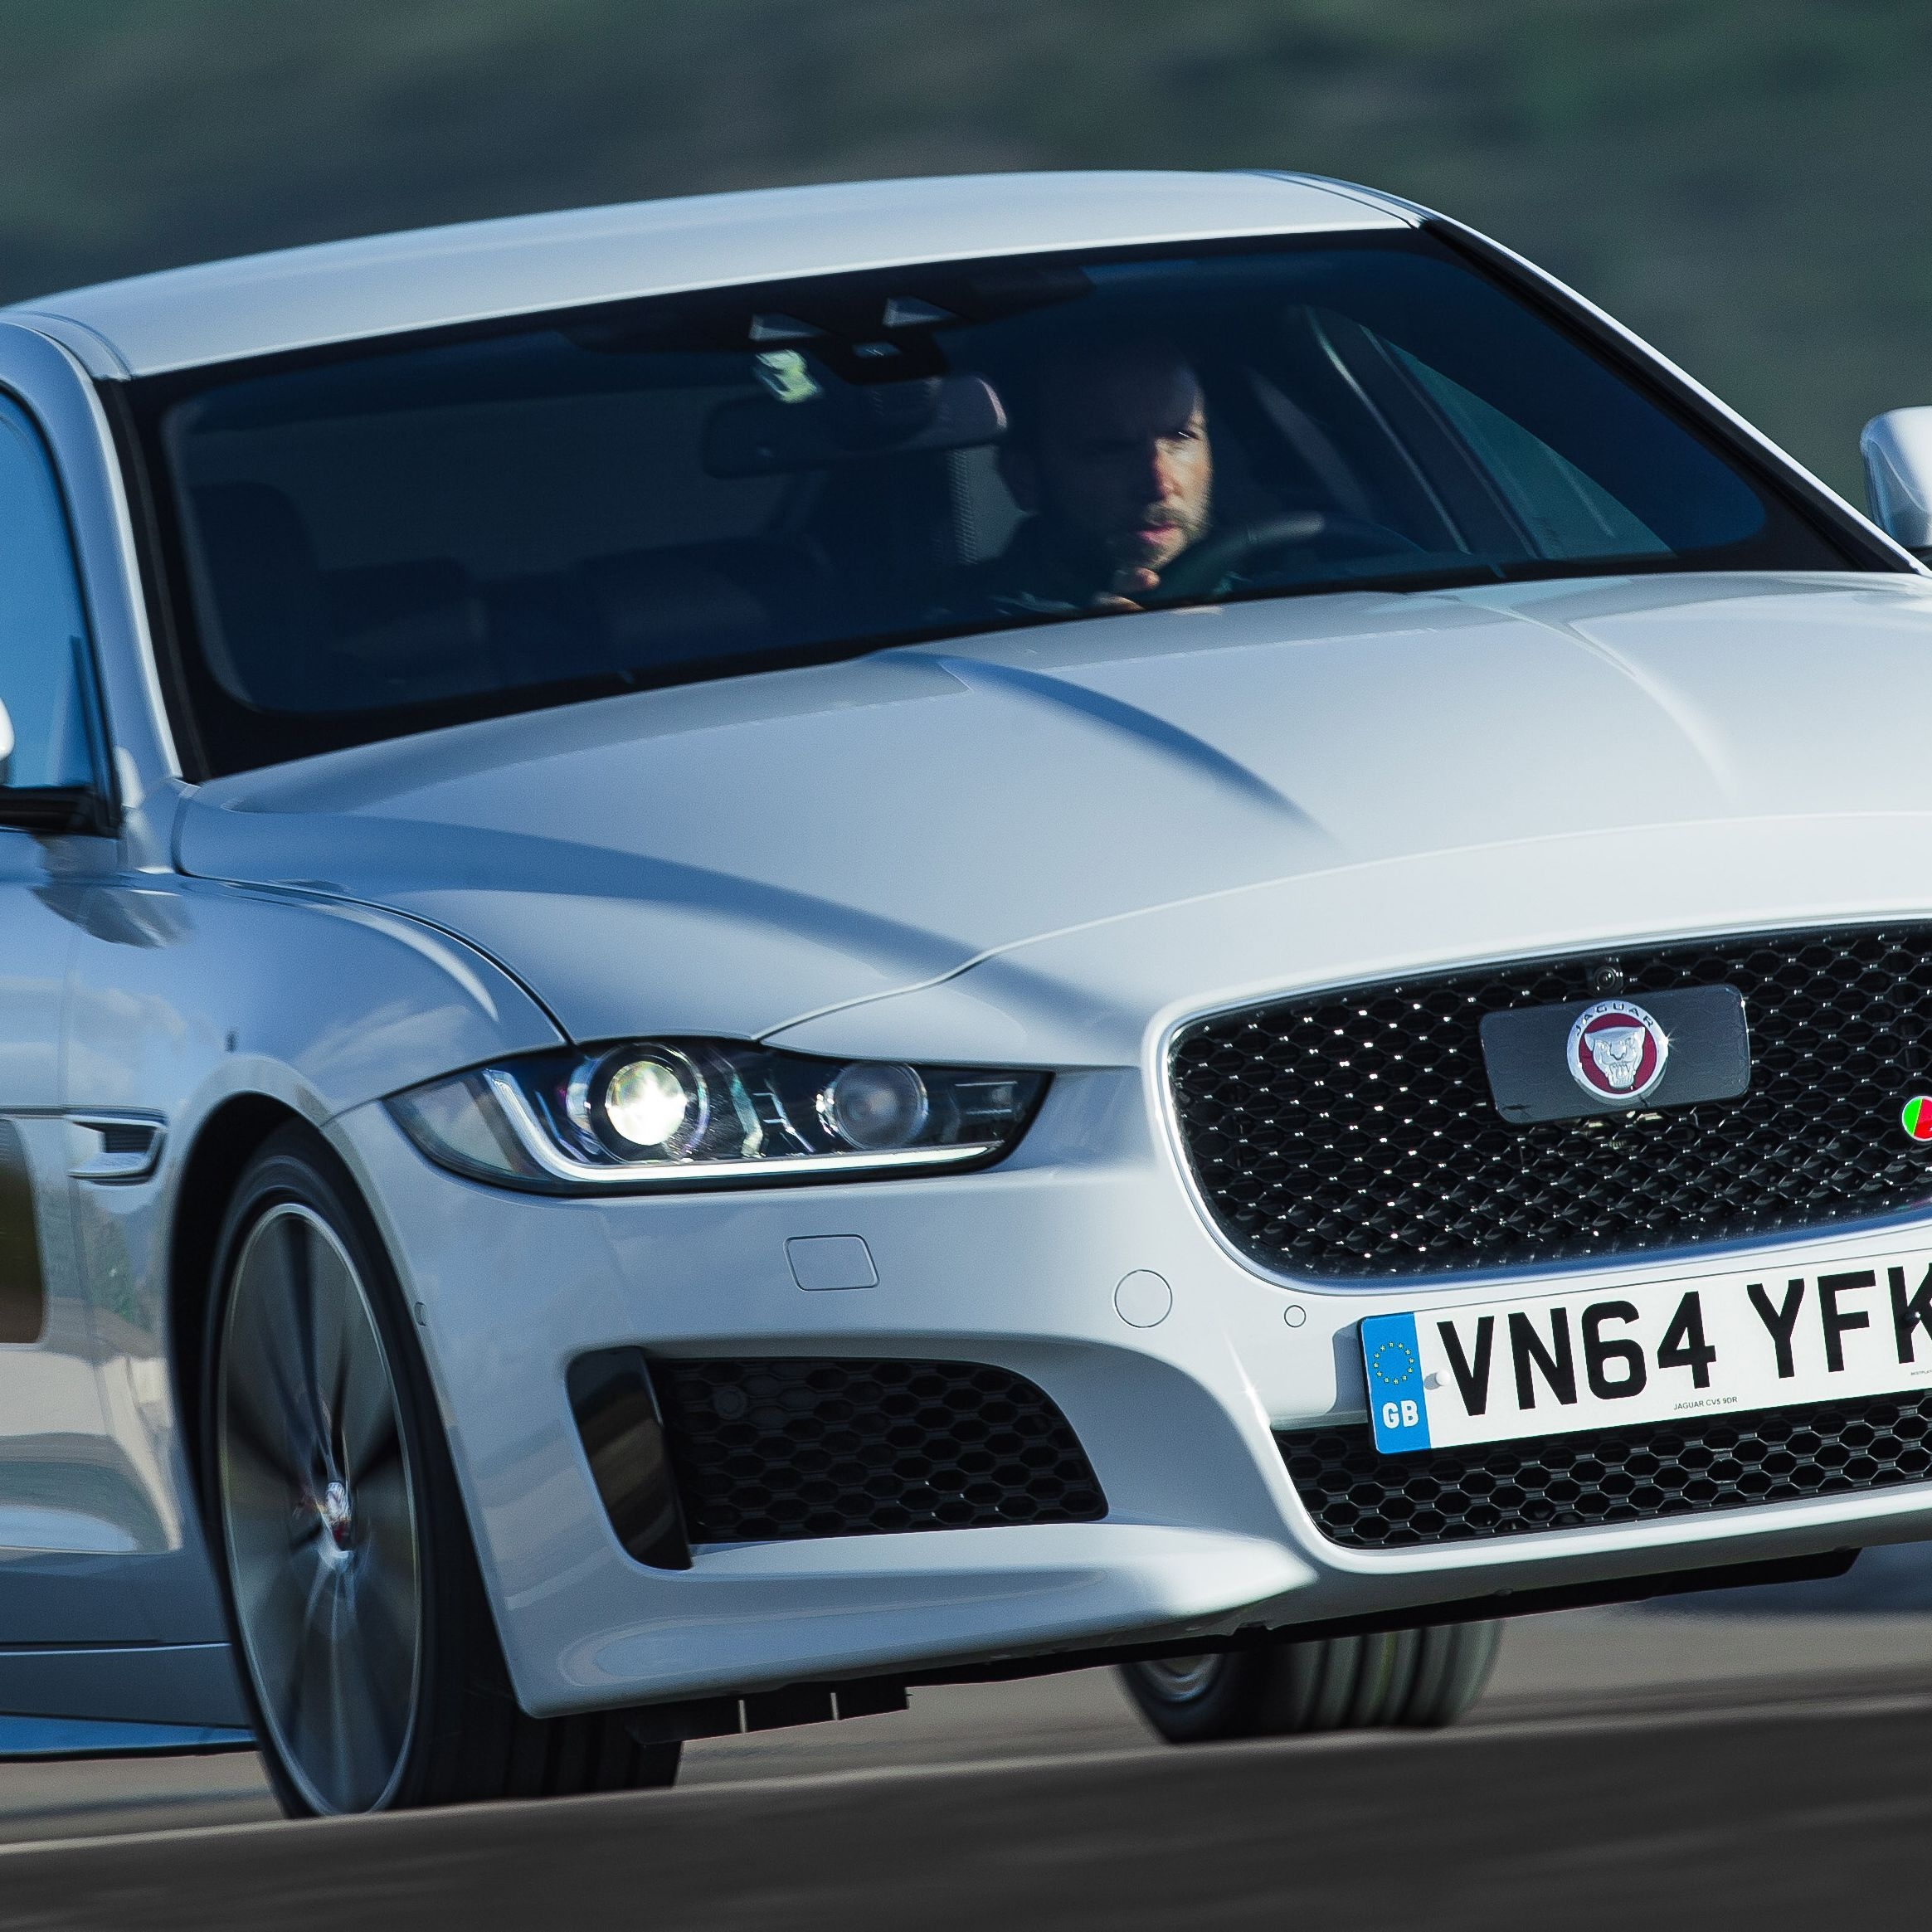 The XE is sized within 2 inches of the BMW 3-Series in every external dimension but feels slightly smaller inside. It's 1.5 inches wider and 0.6 inch lower, though, and with its wheels pushed right to the outside, it looks low and sturdy on the road.